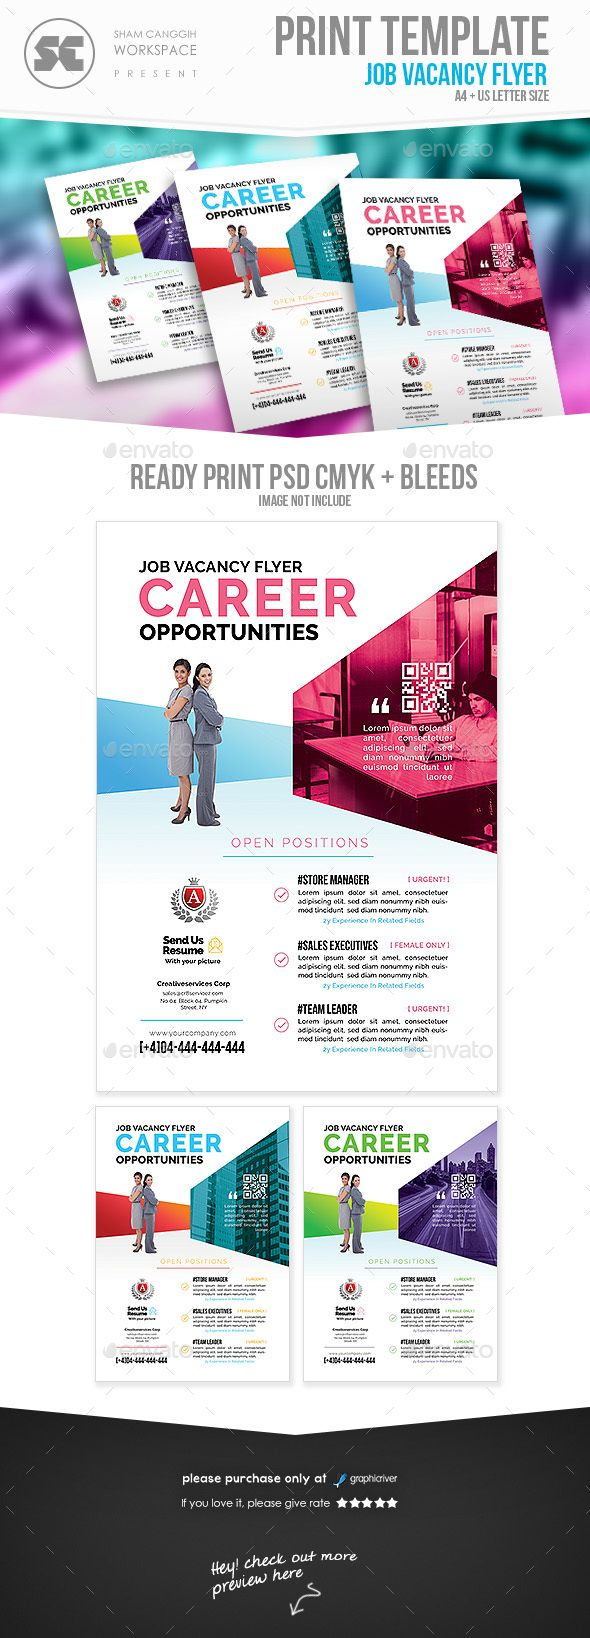 career recruitment flyer template psd